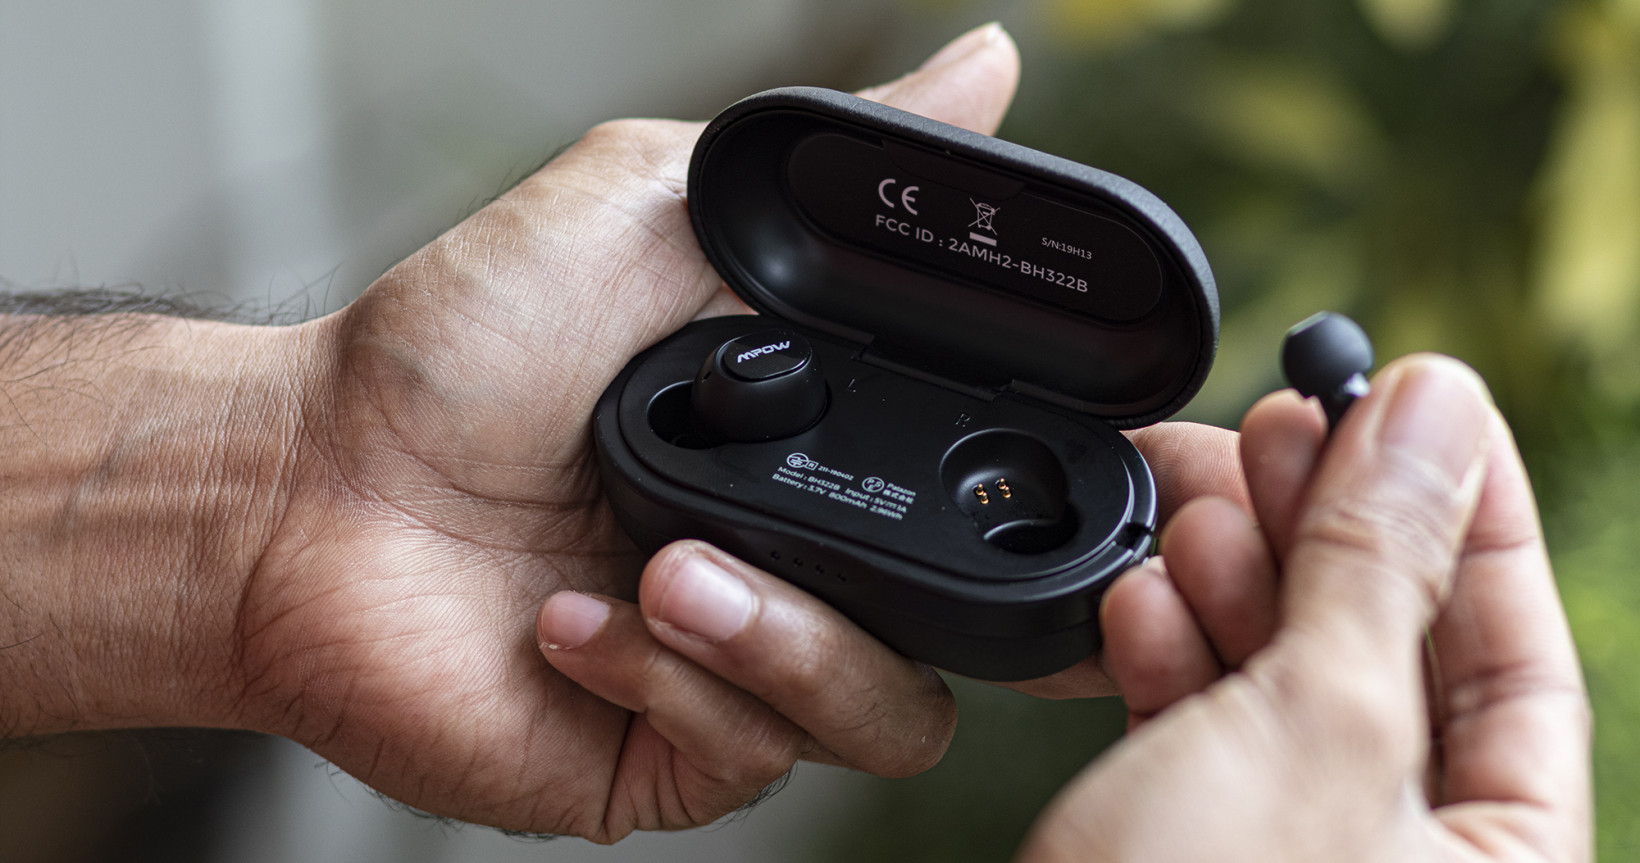 Mpow's M5 earbuds are ultra-light and comfortable, and the case is compact too